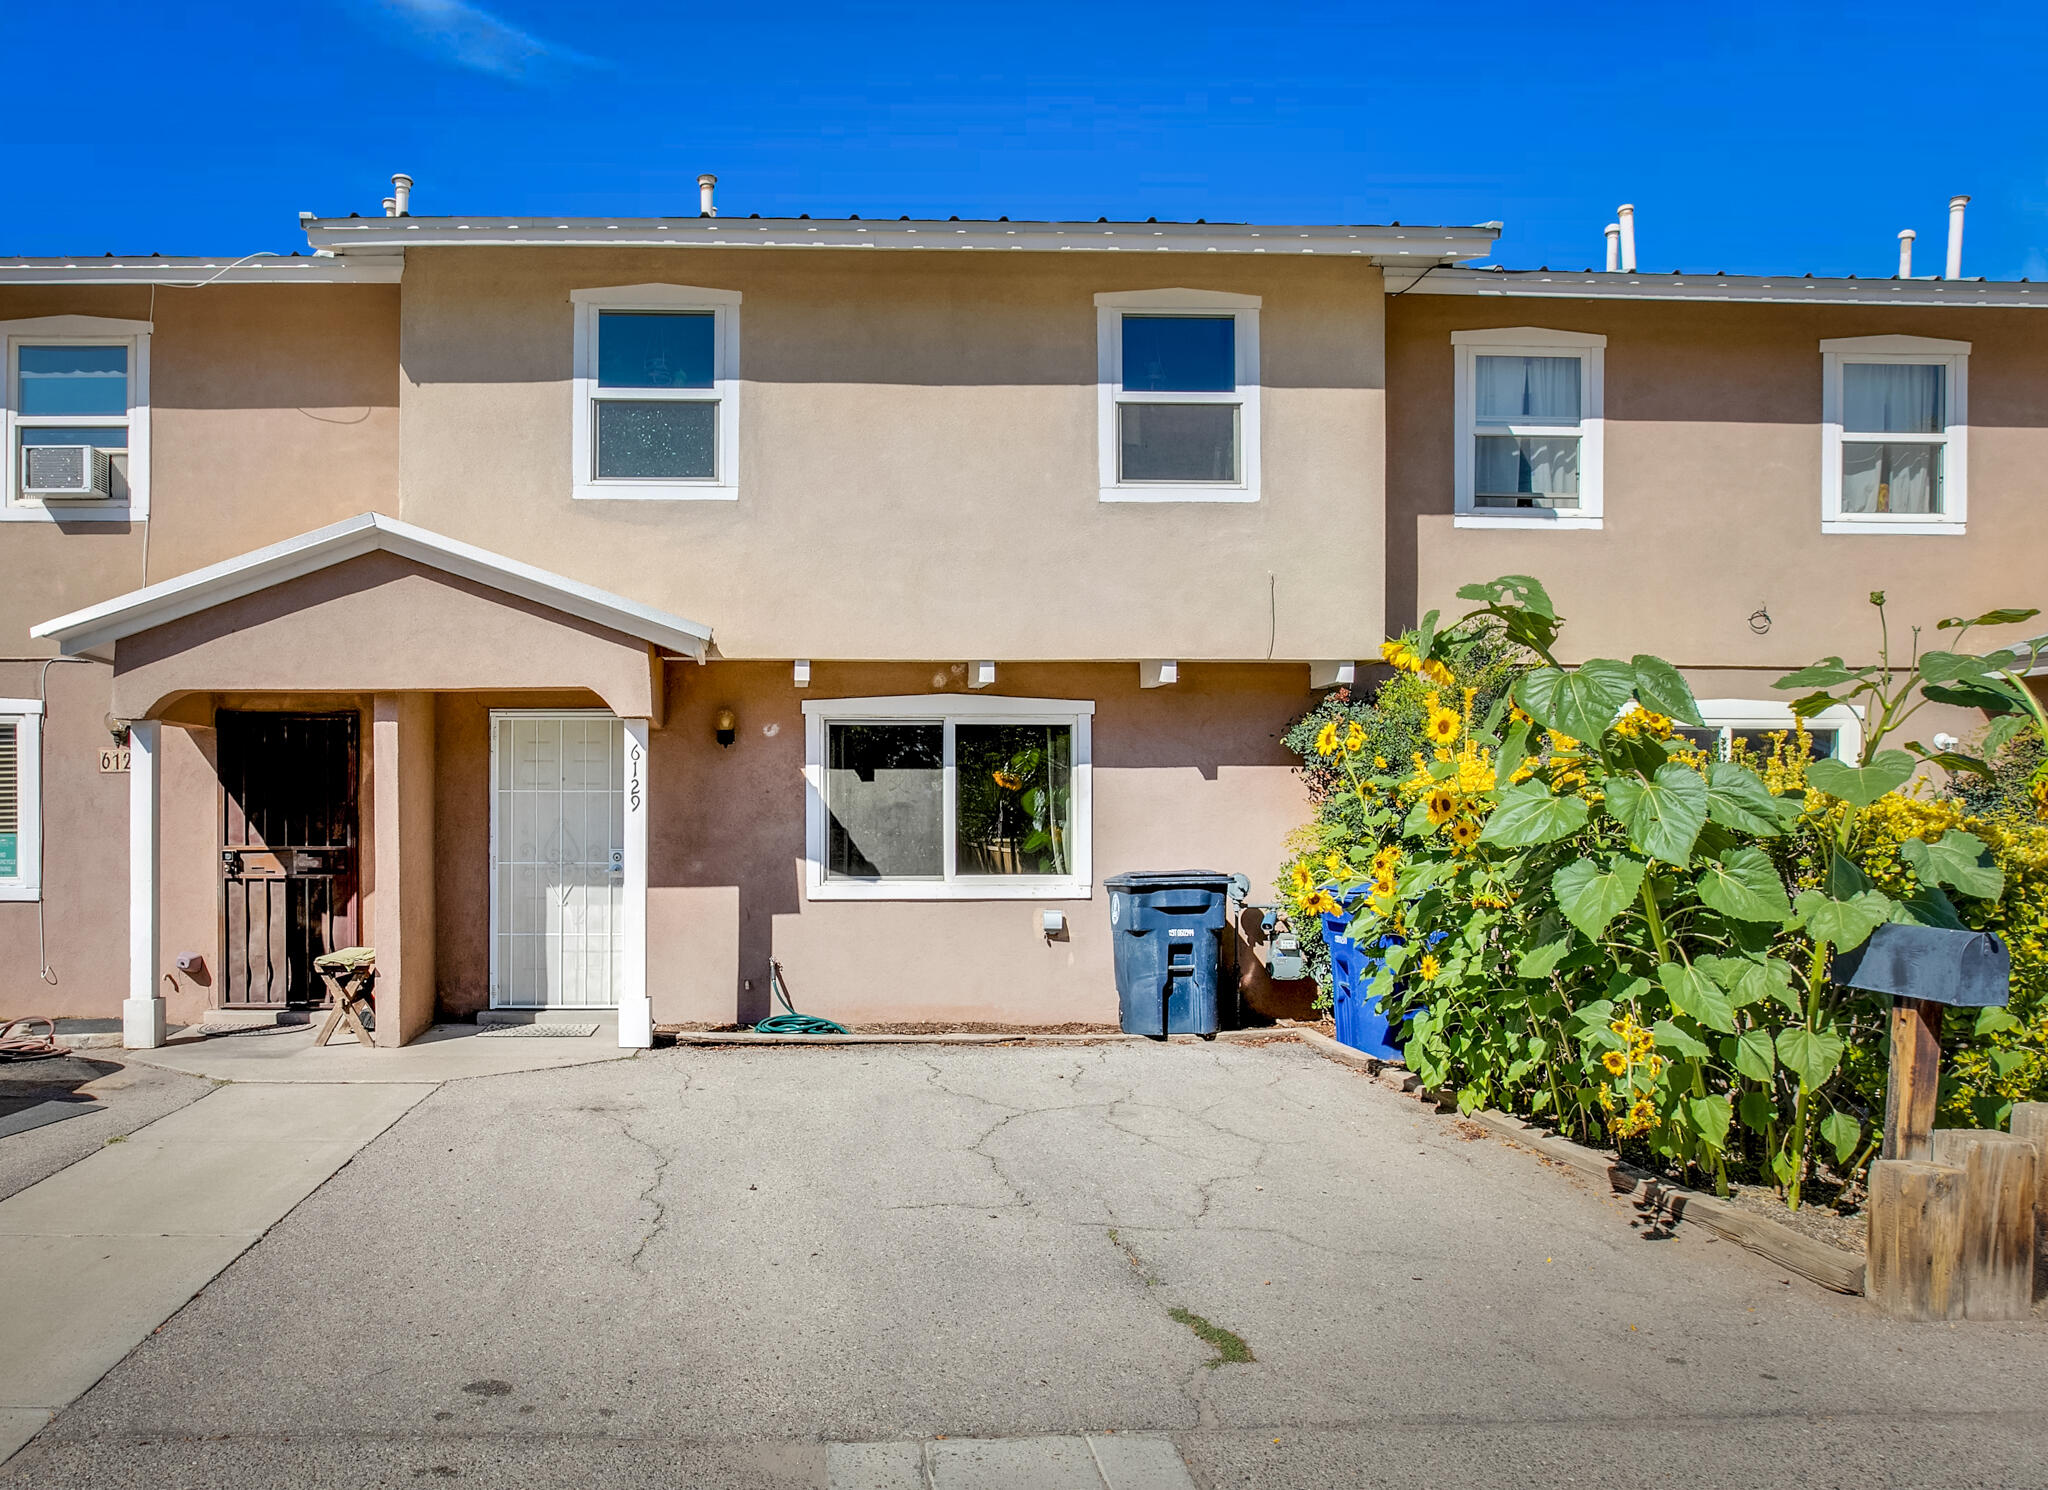 Welcome to a well loved townhome nestled within the heart of the North Valley. If you are looking for an easy to maintain home that has access to great shops, farmers markets, restaurants and freeways... this is the home for you. There is an HOA that includes the exterior of the building-fencing/stucco/roof and shaded common areas with grass. There are many recent upgrades to the property; Evaporative cooler, bathroom vanity, fresh paint, 220v exterior electric plug in for a vehicle, and a new dishwasher. This property will not be on the market long, don't wait to view this one!!